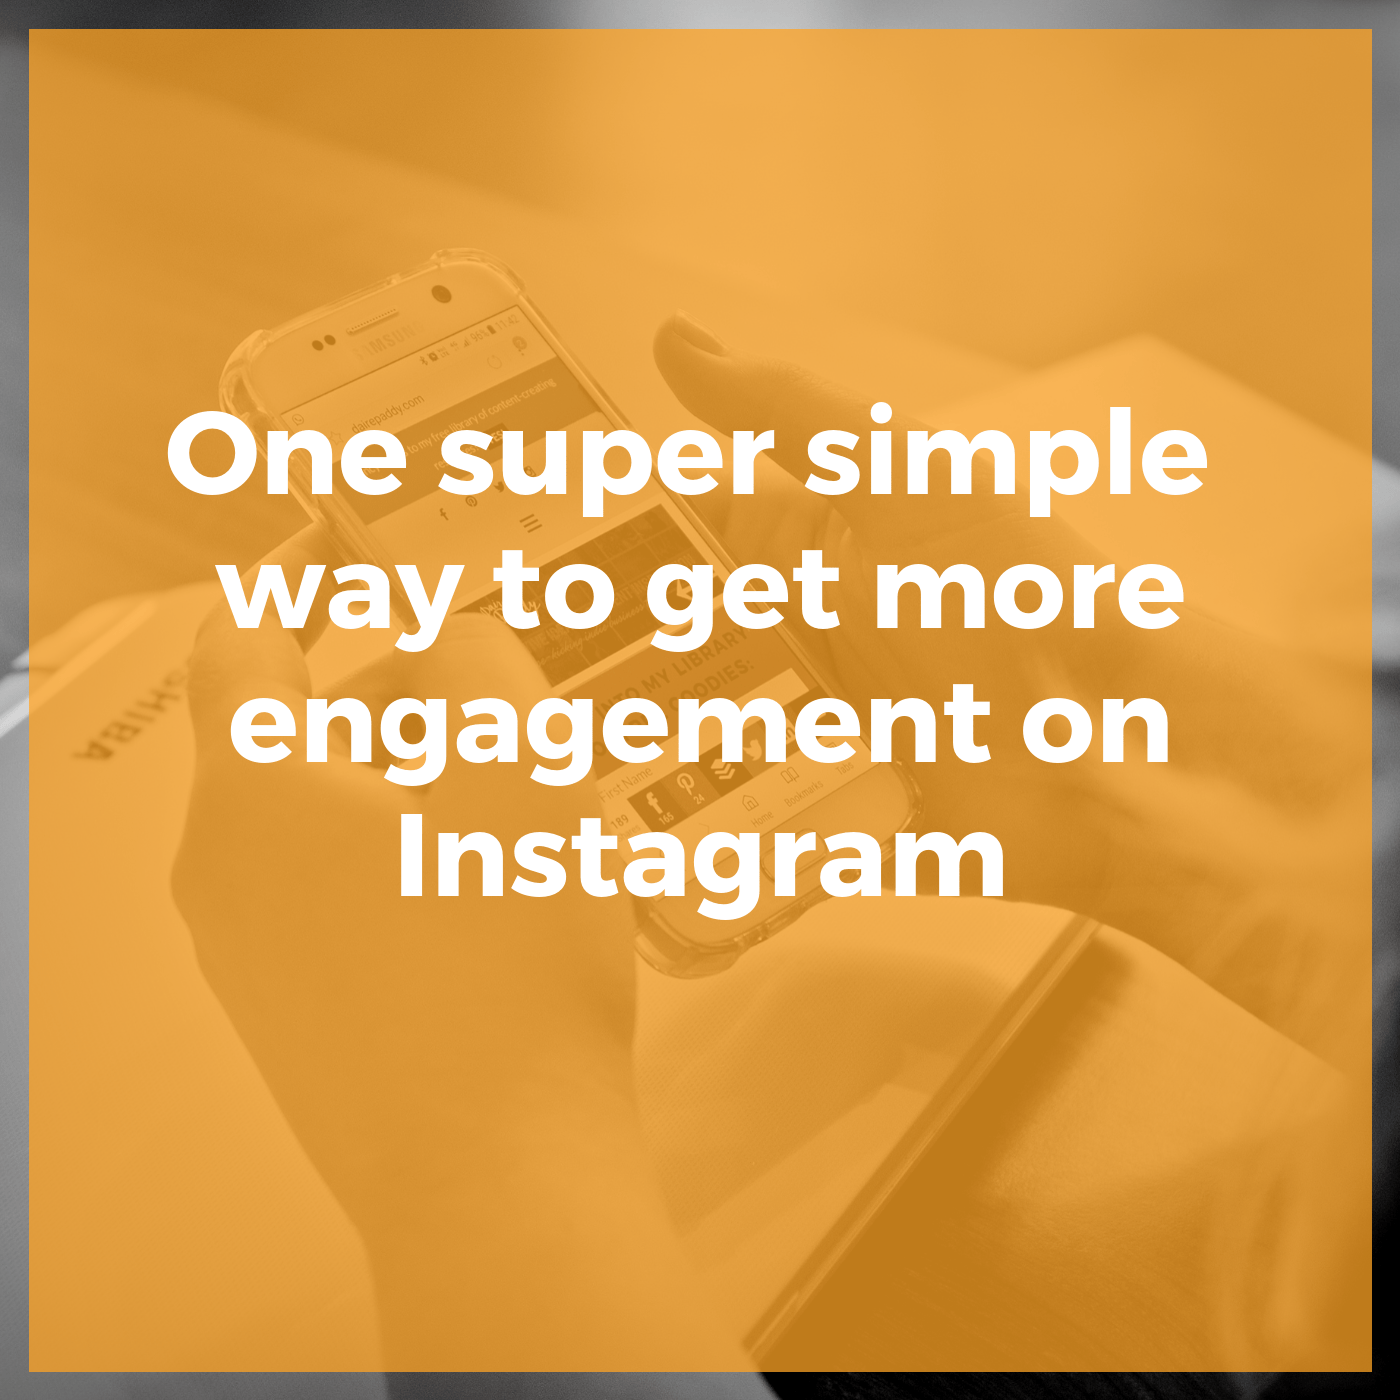 super simple way to get more engagement on Instagram